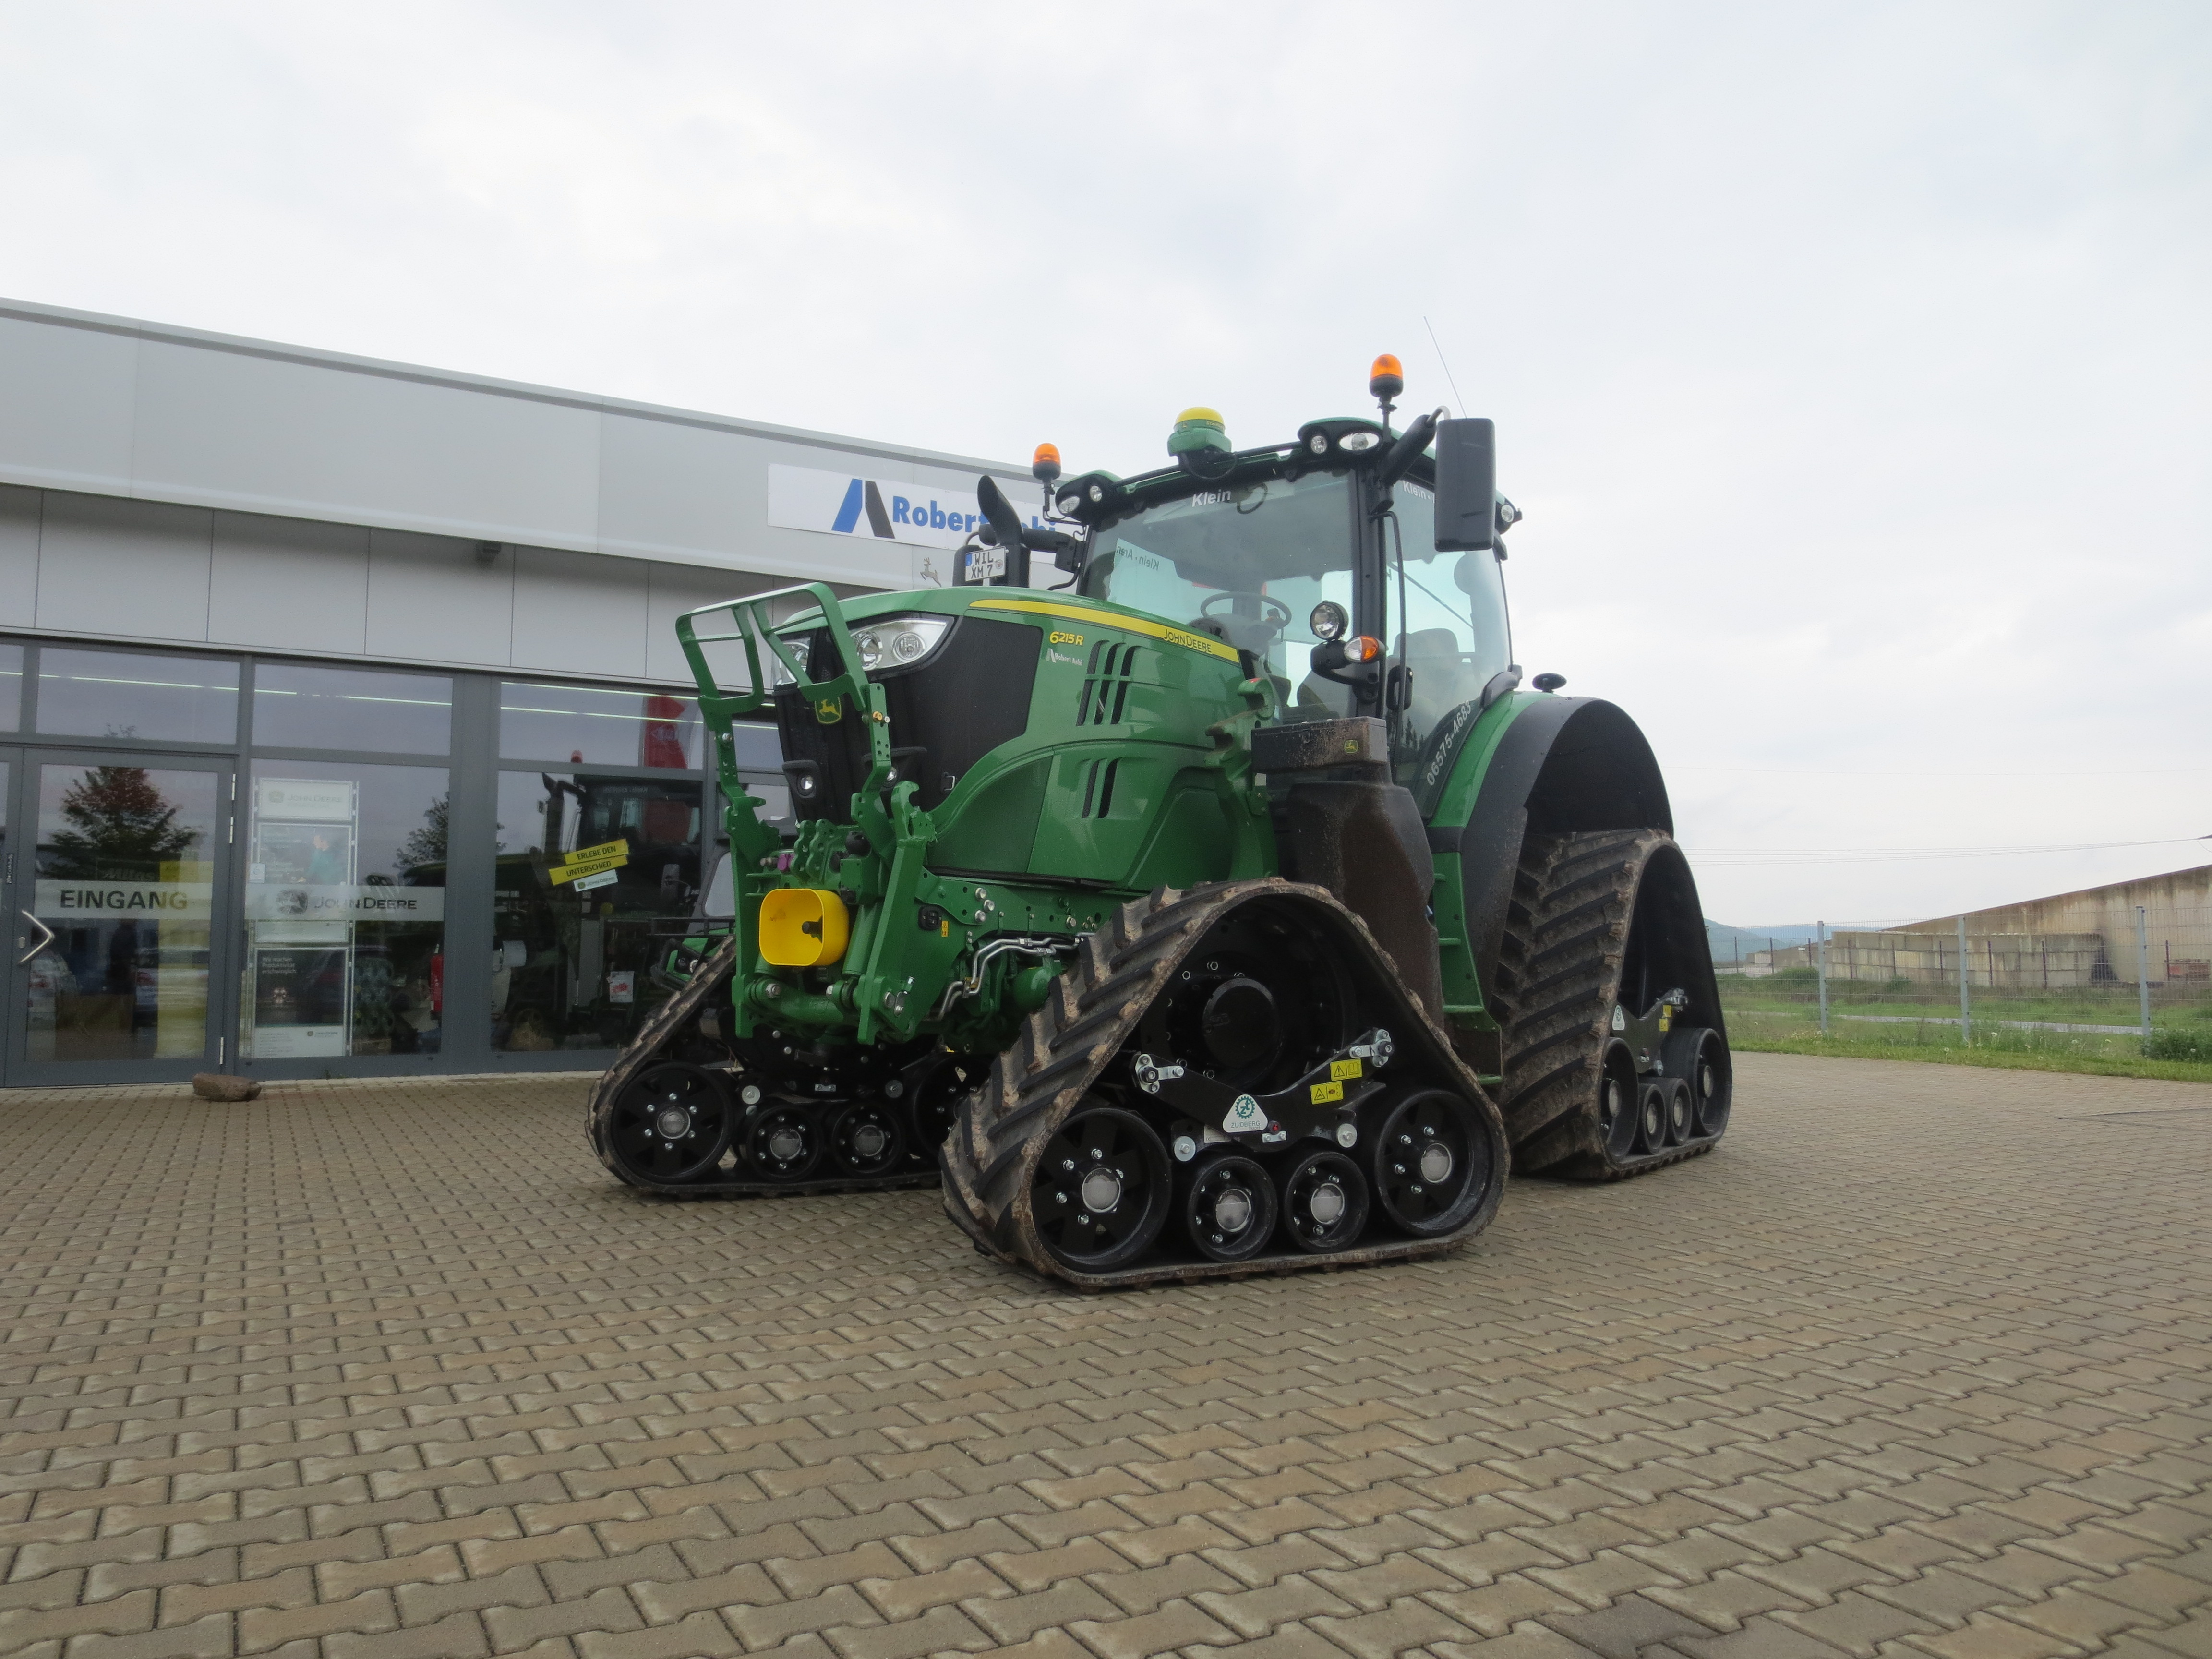 Tractor Front Track : New track system for john deere r large frame zuidberg